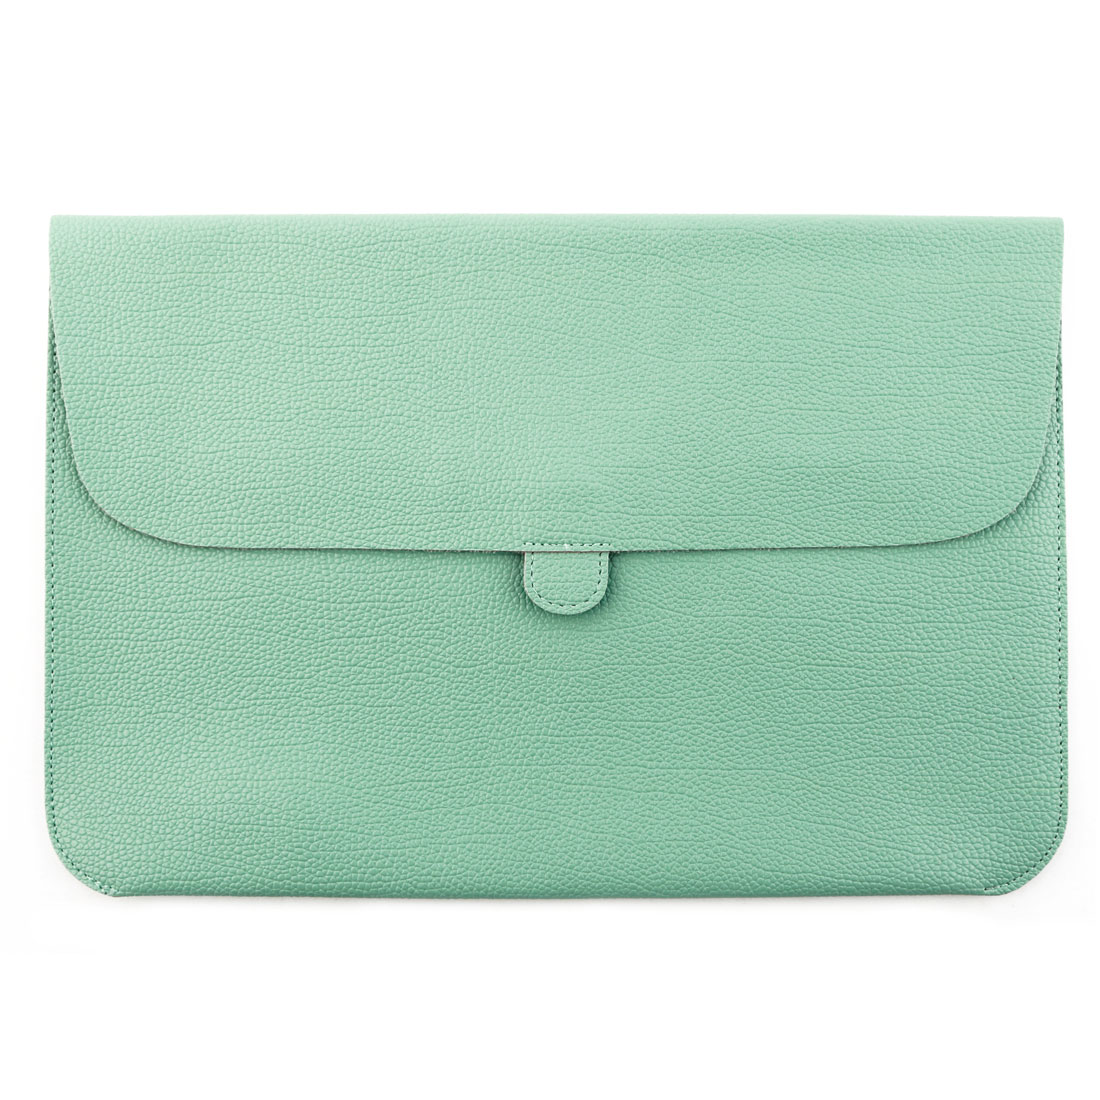 Office Notebook PU Leather Carry Bag Pouch Laptop Sleeve Turquoise Color for Macbook 15.4 Inch